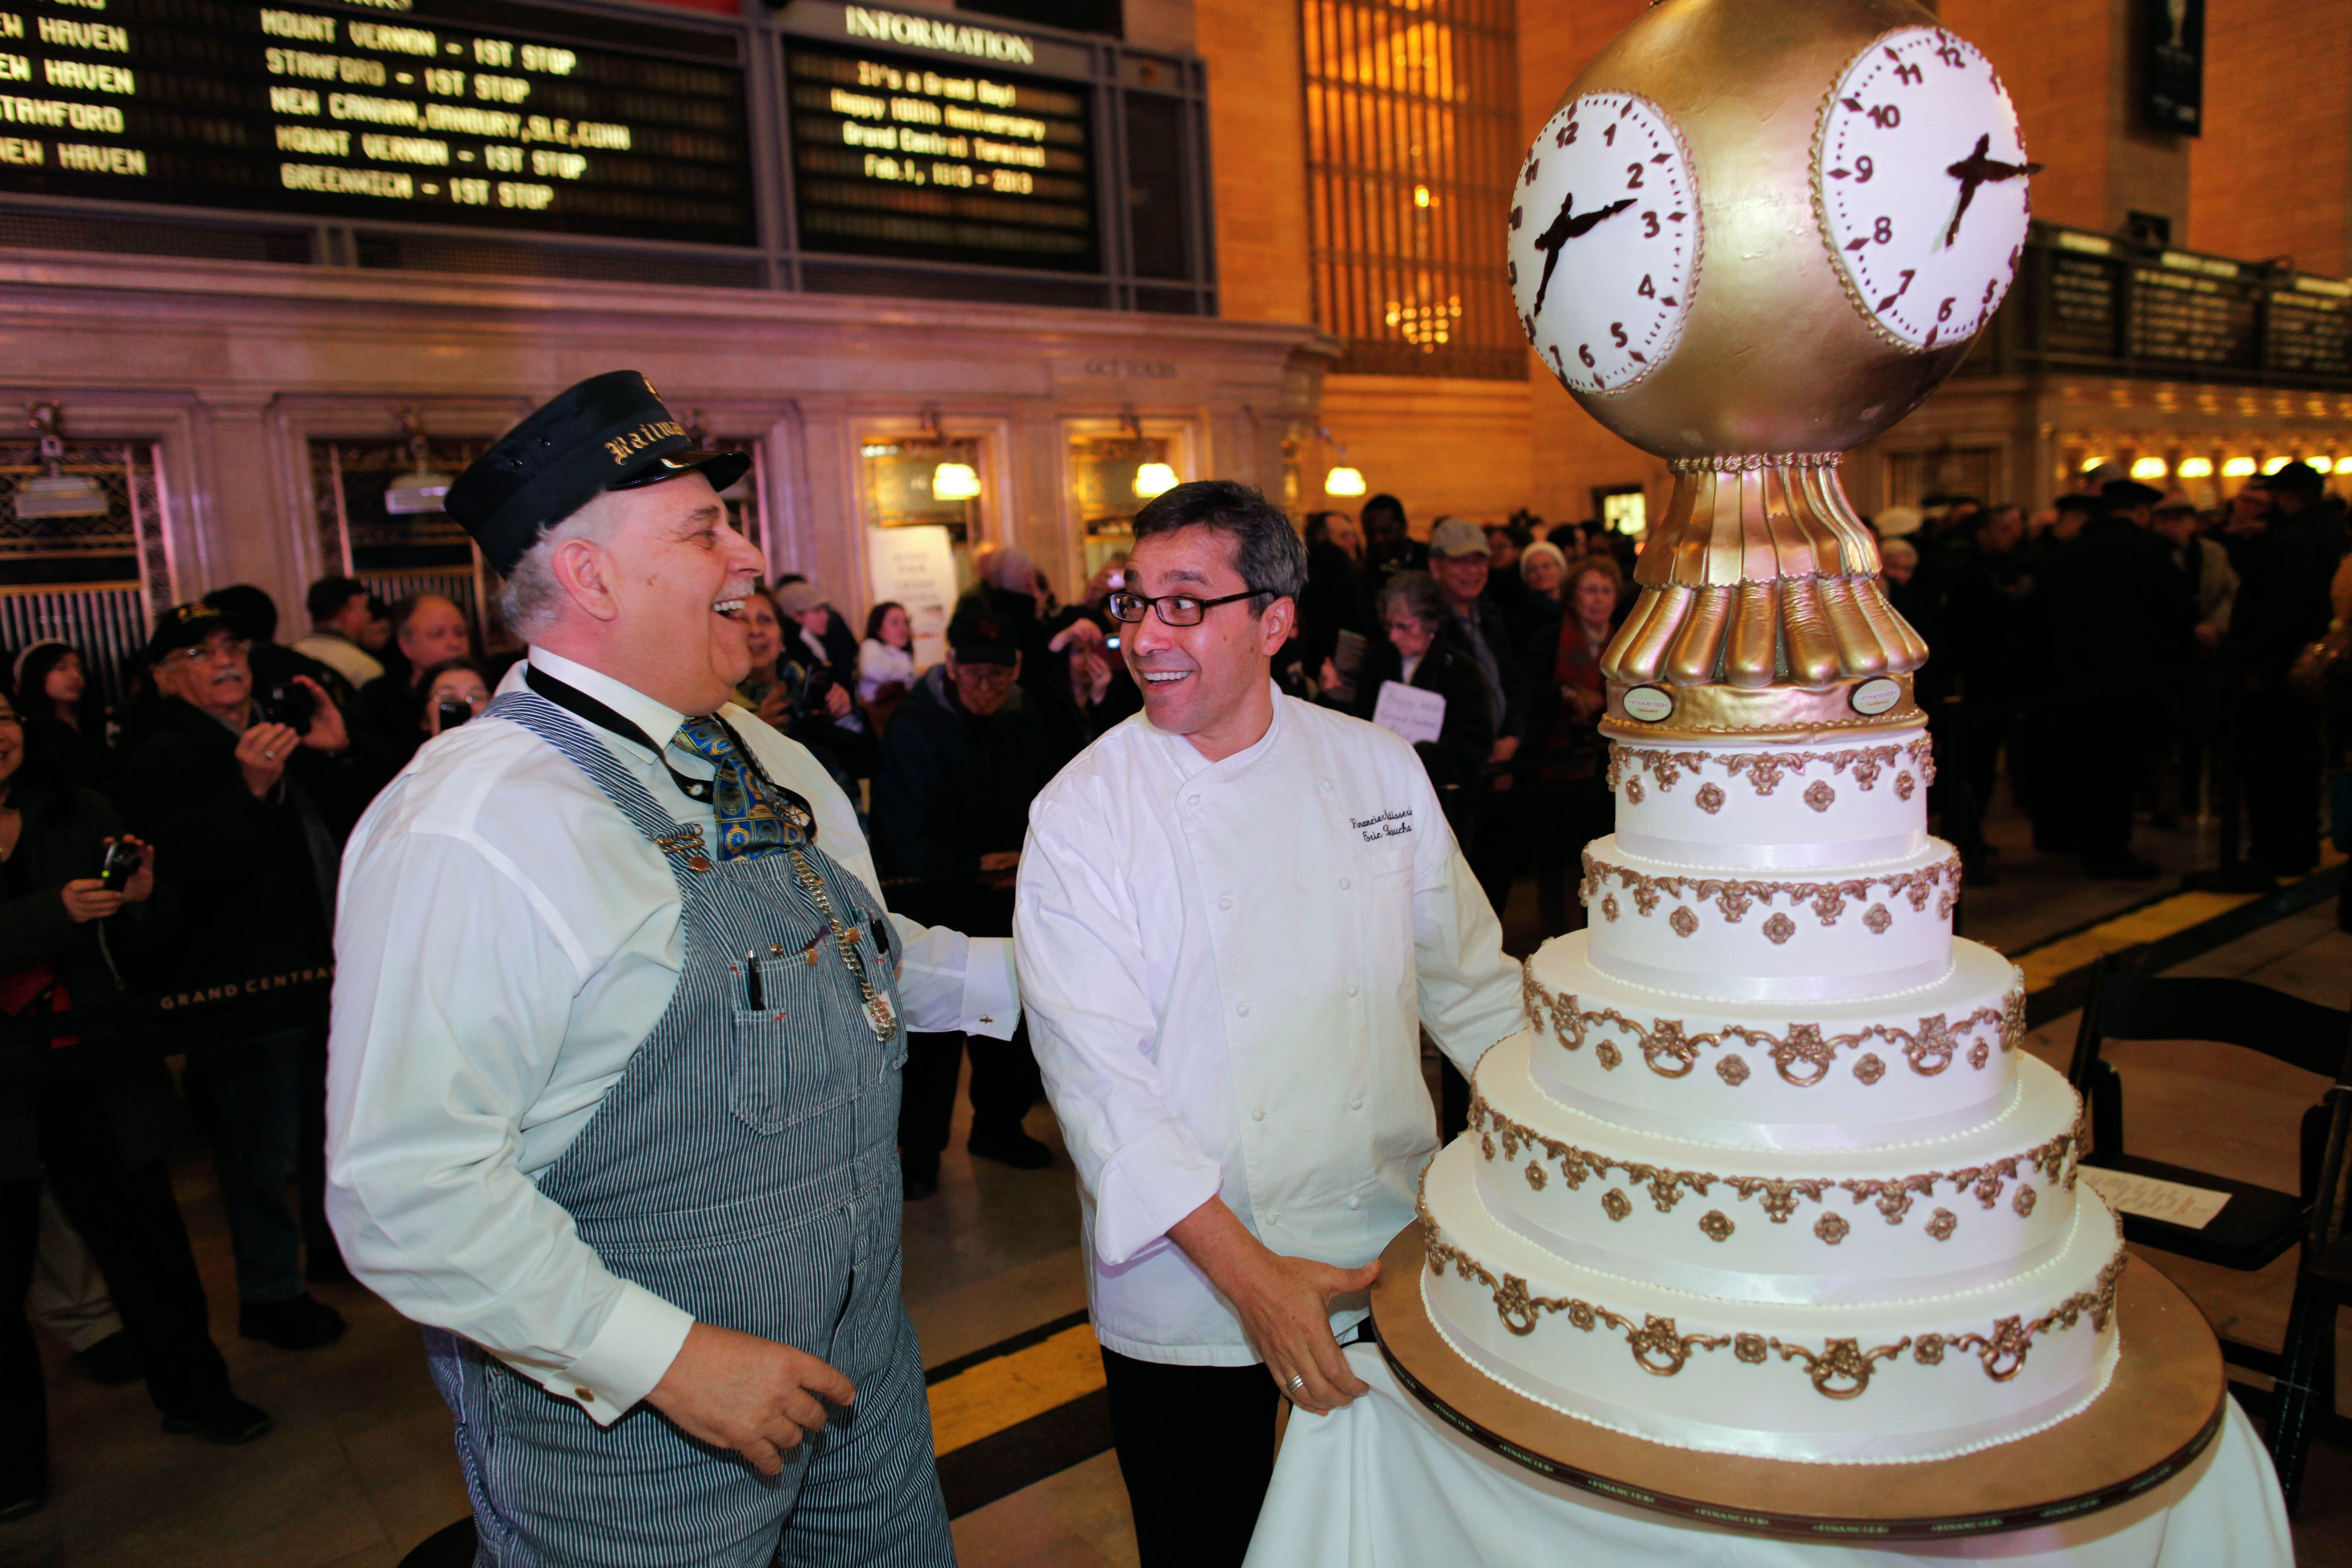 Chef Eric wheeling out his Centennial masterpiece! #GCT100